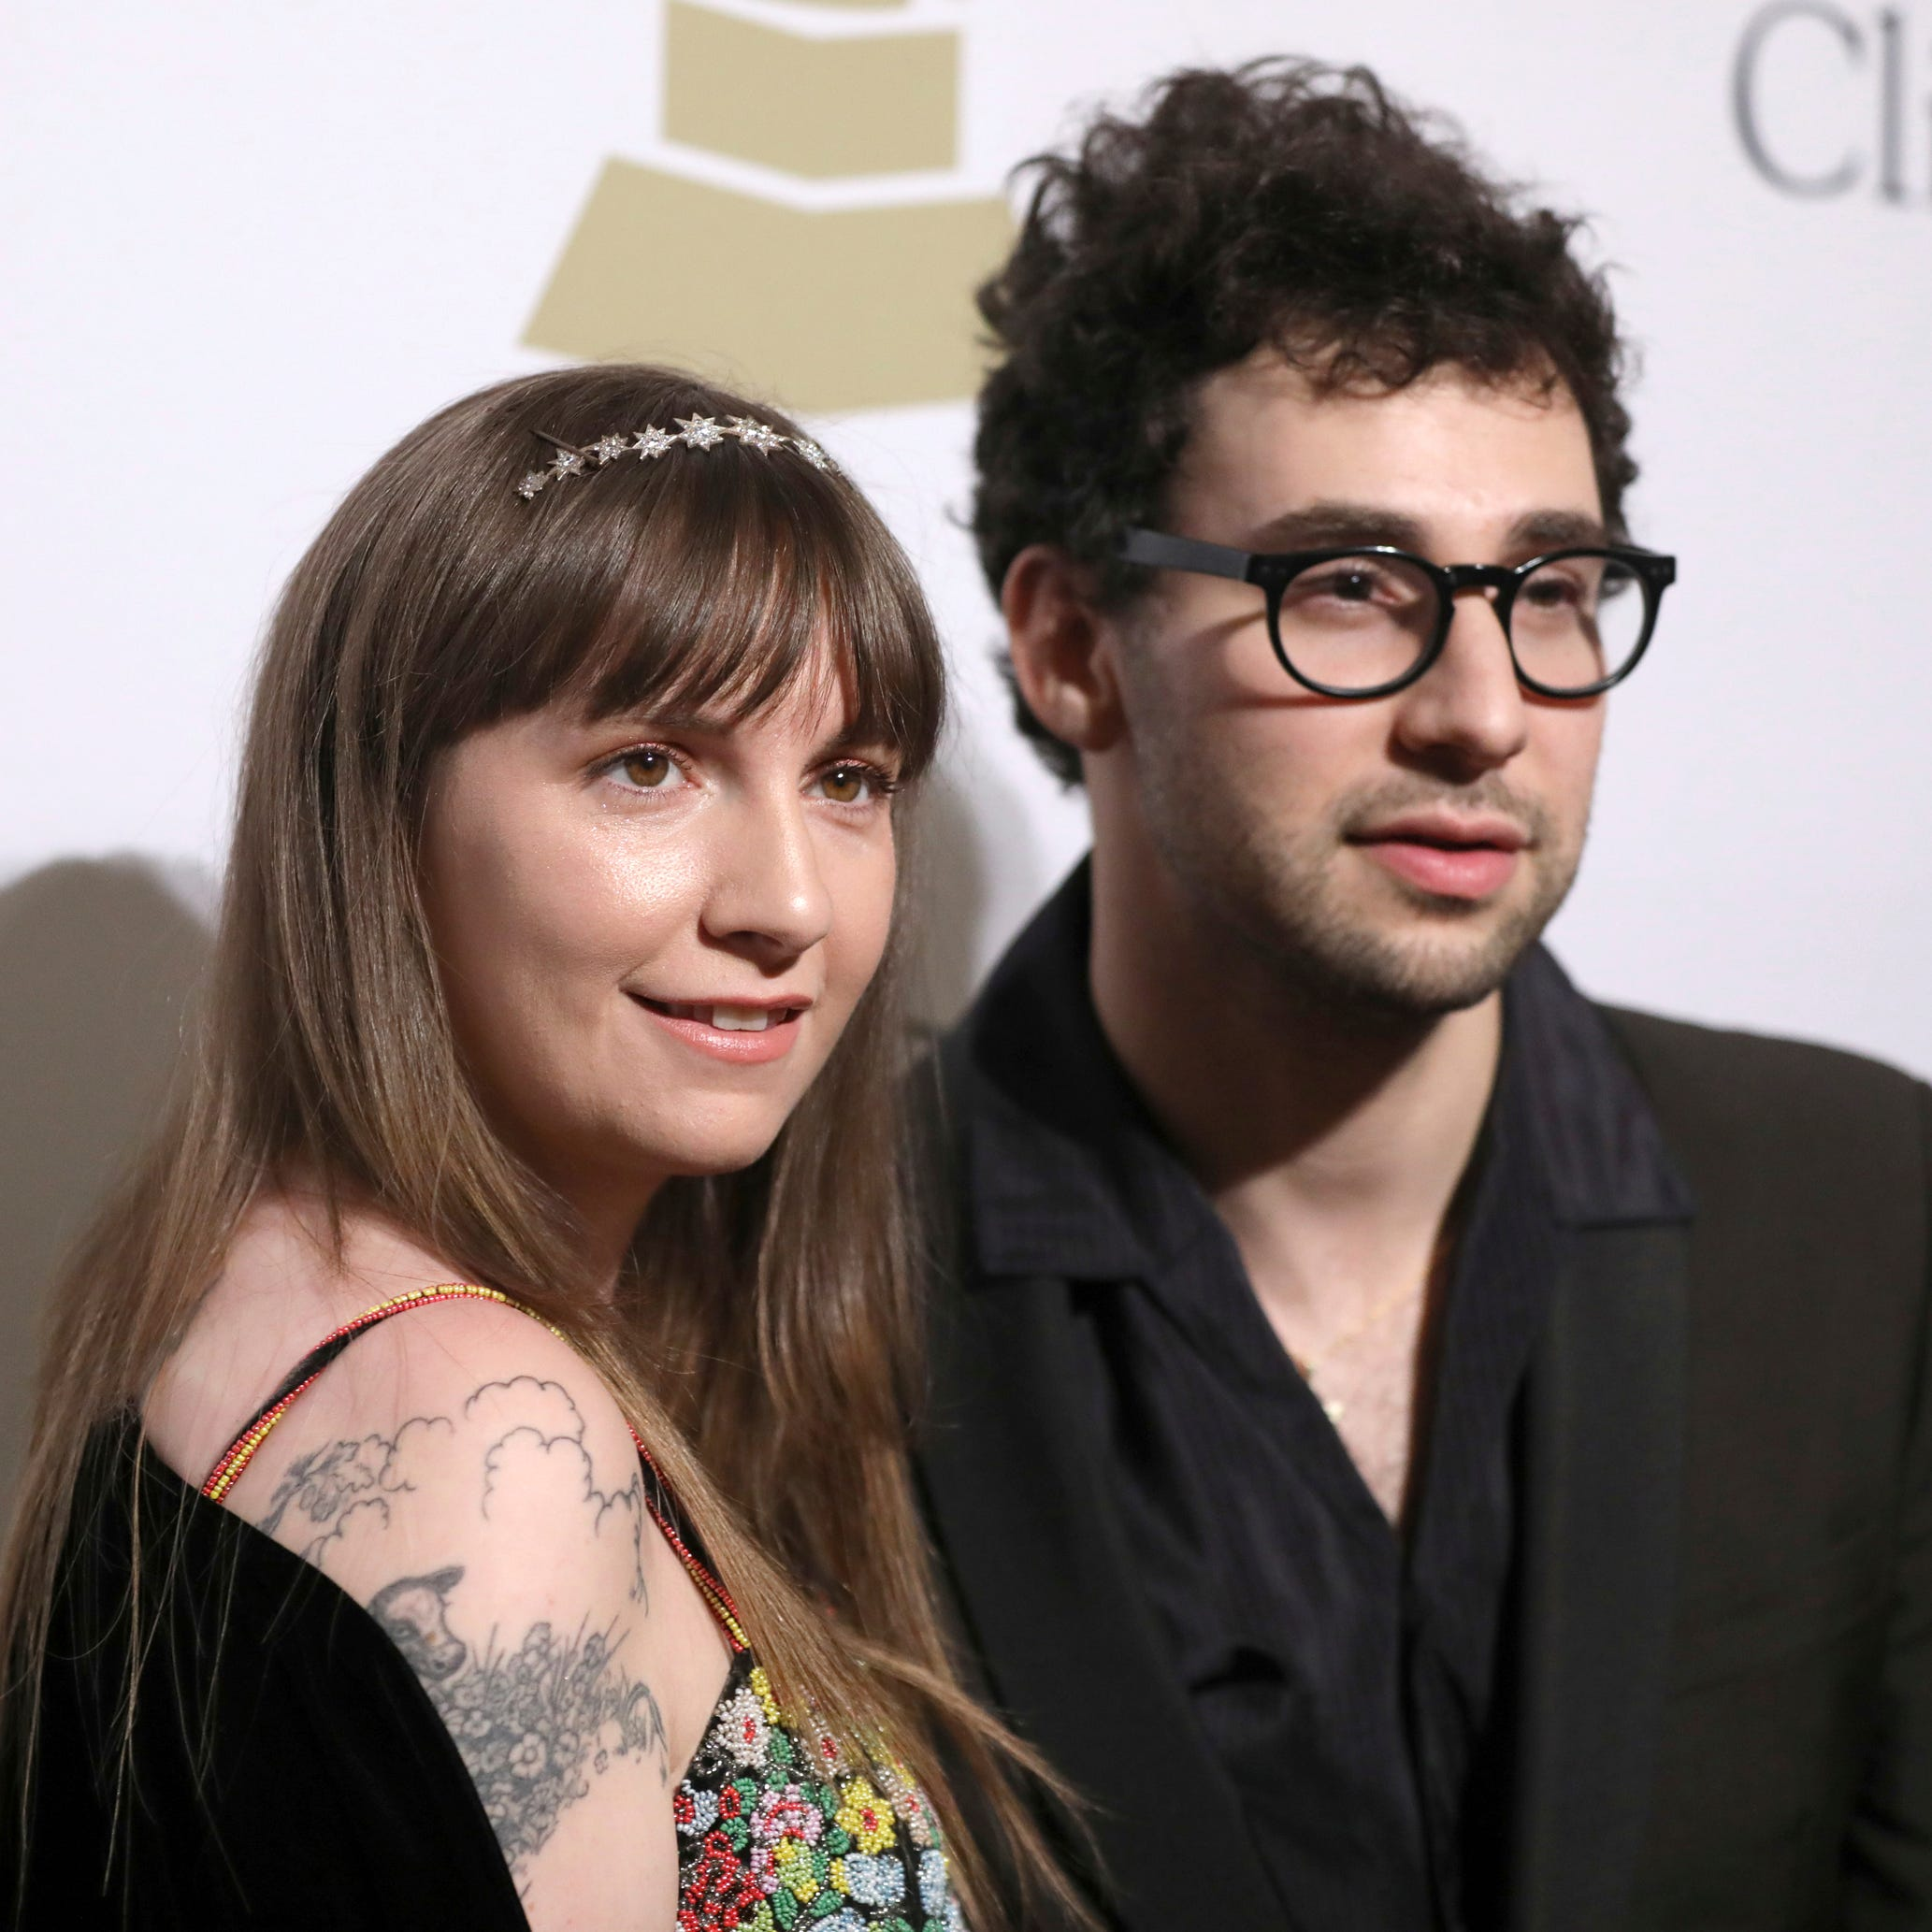 Lena Dunham with Jack Antonoff in 2017.